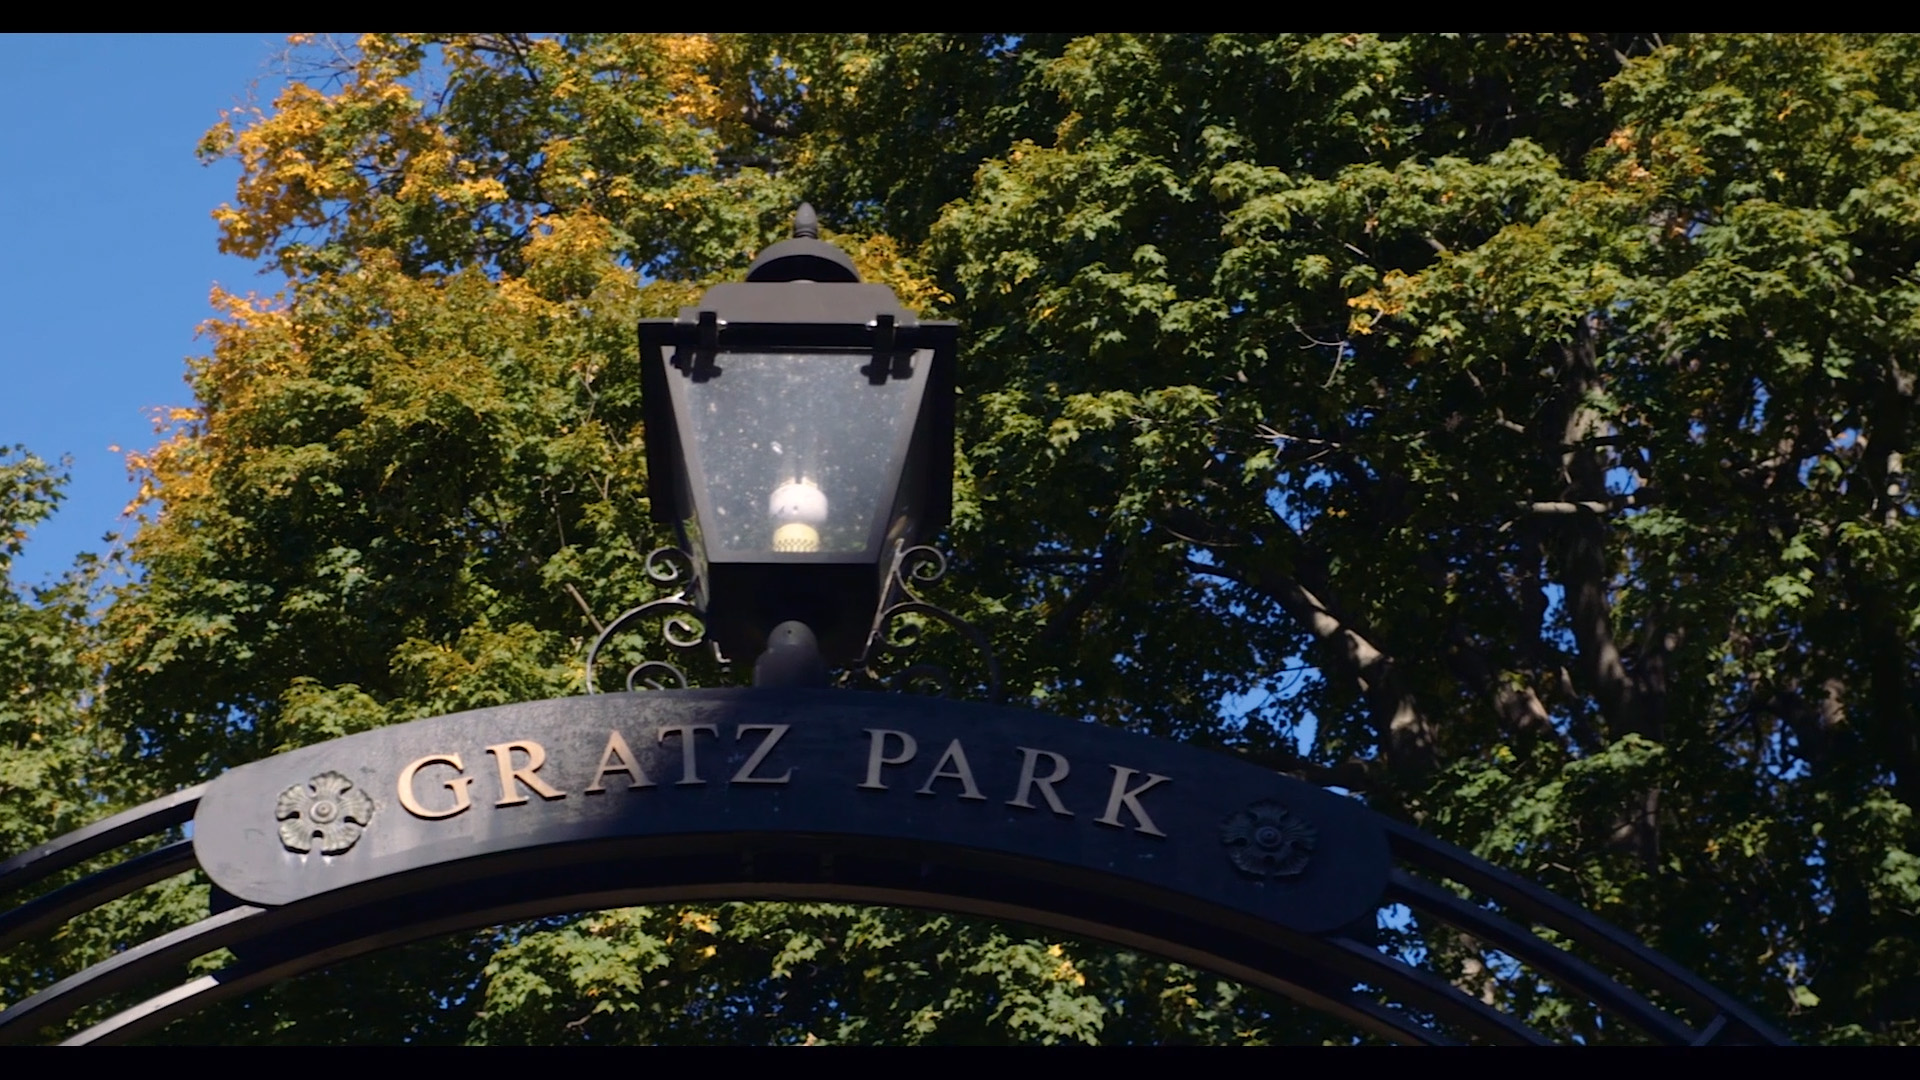 Gratz Park in downtown Lexington, Kentucky. Kentucky Wedding Video